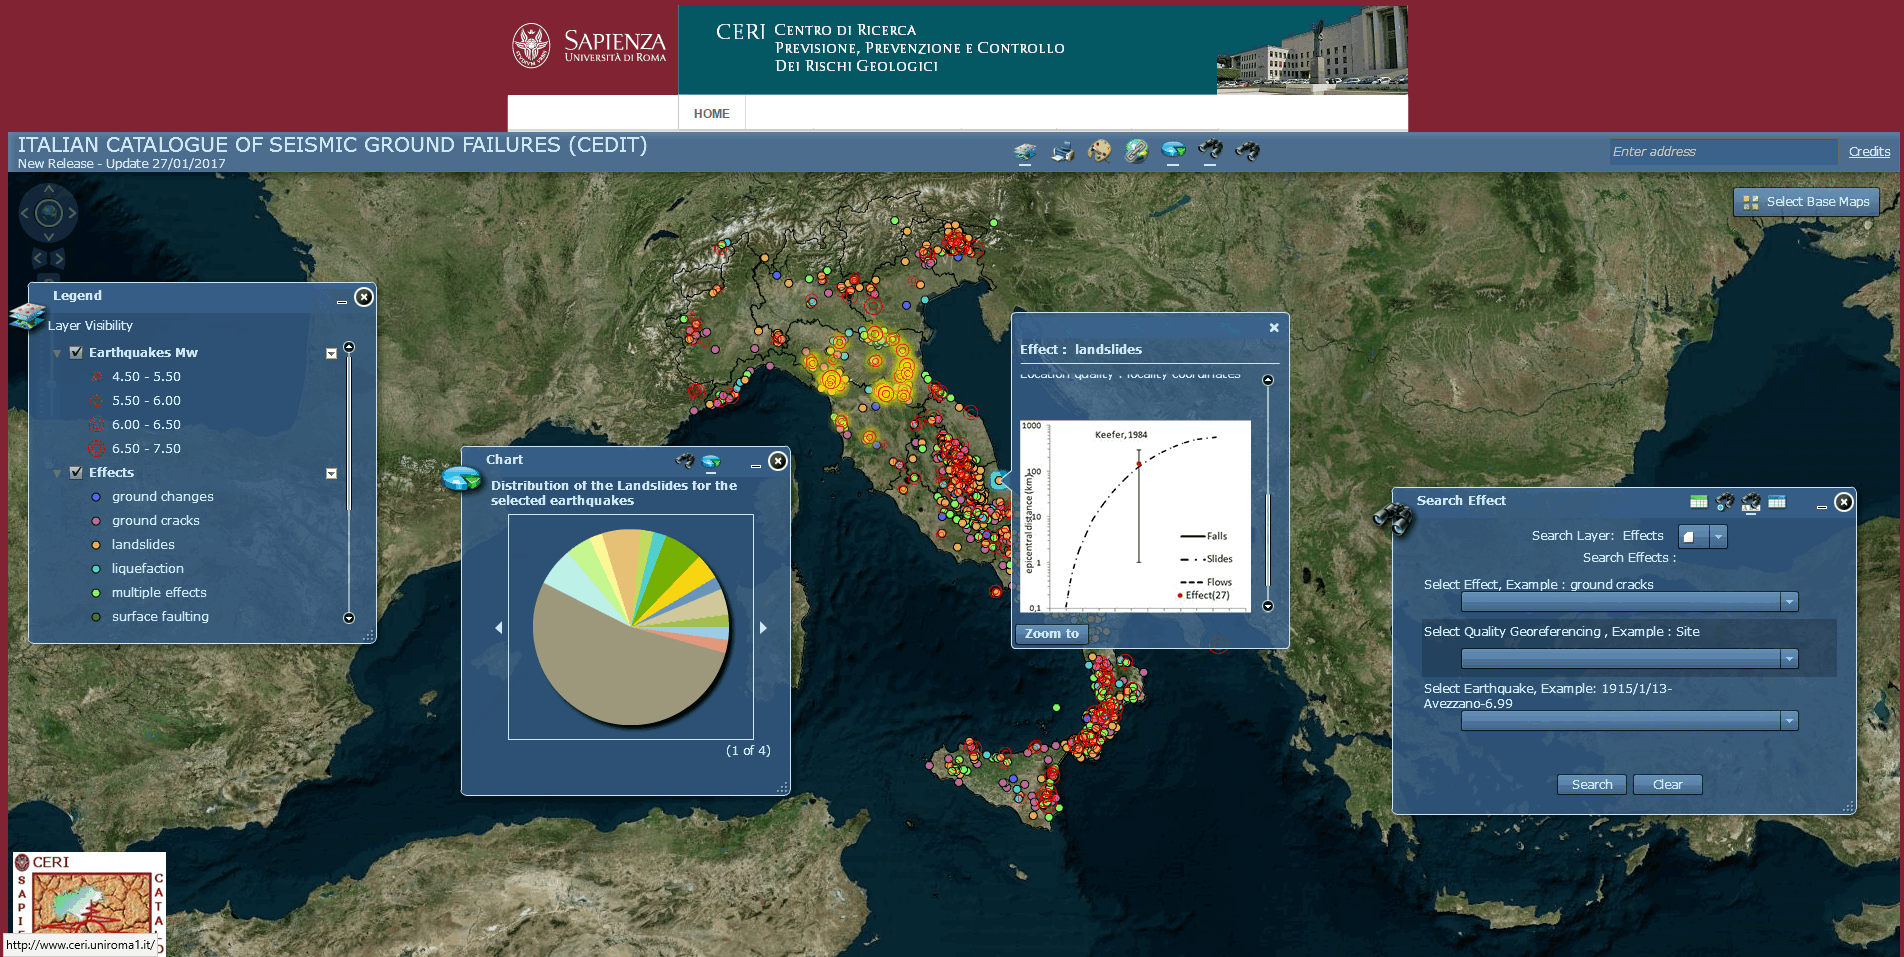 Italian Catalogue of Earthquake-Induced Ground Failures - CERI, La Sapienza University (Rome)